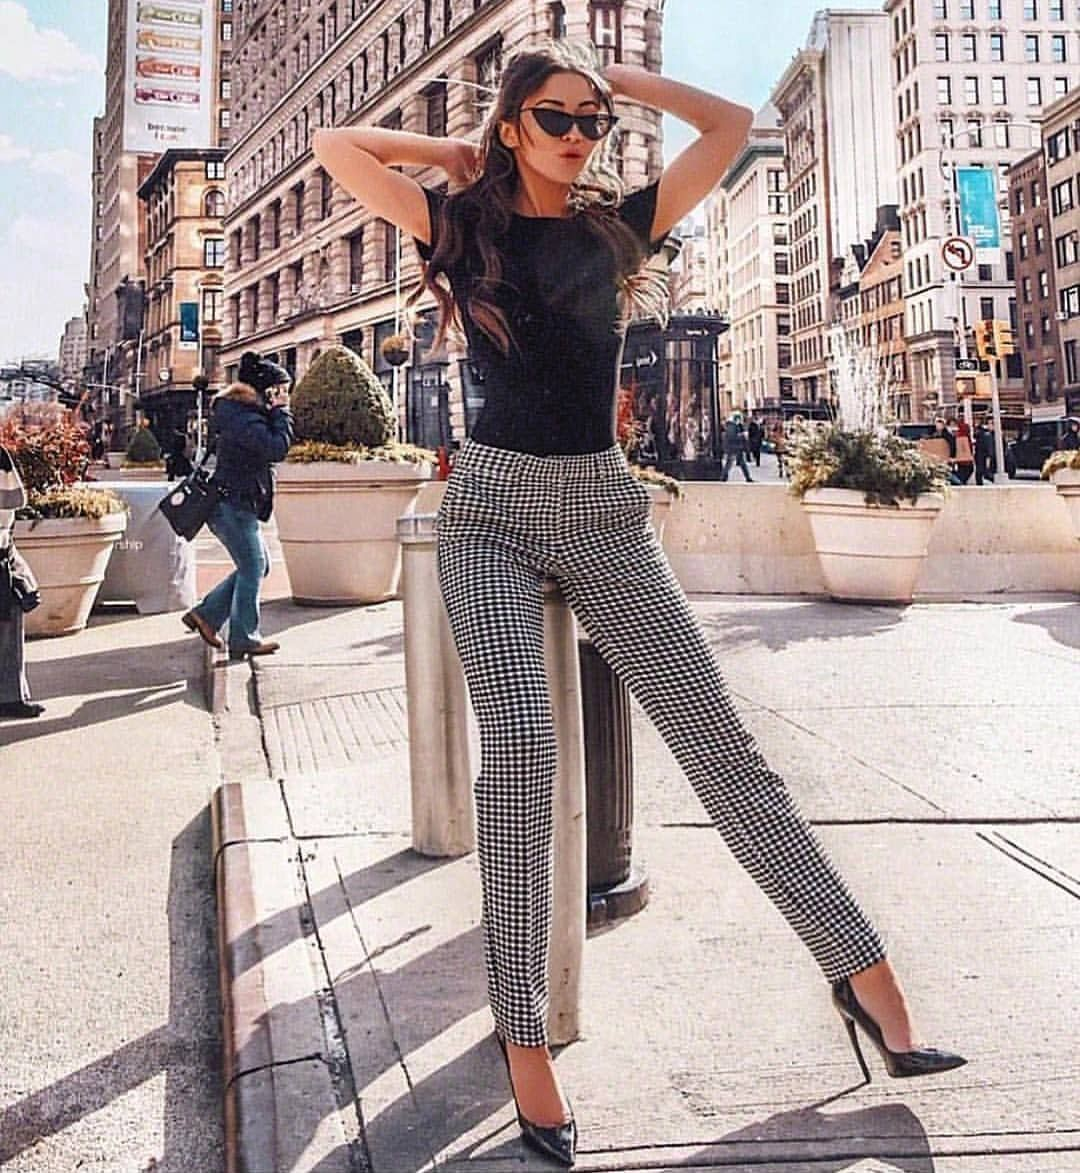 Instagram fashion with business casual, trousers, denim, jeans